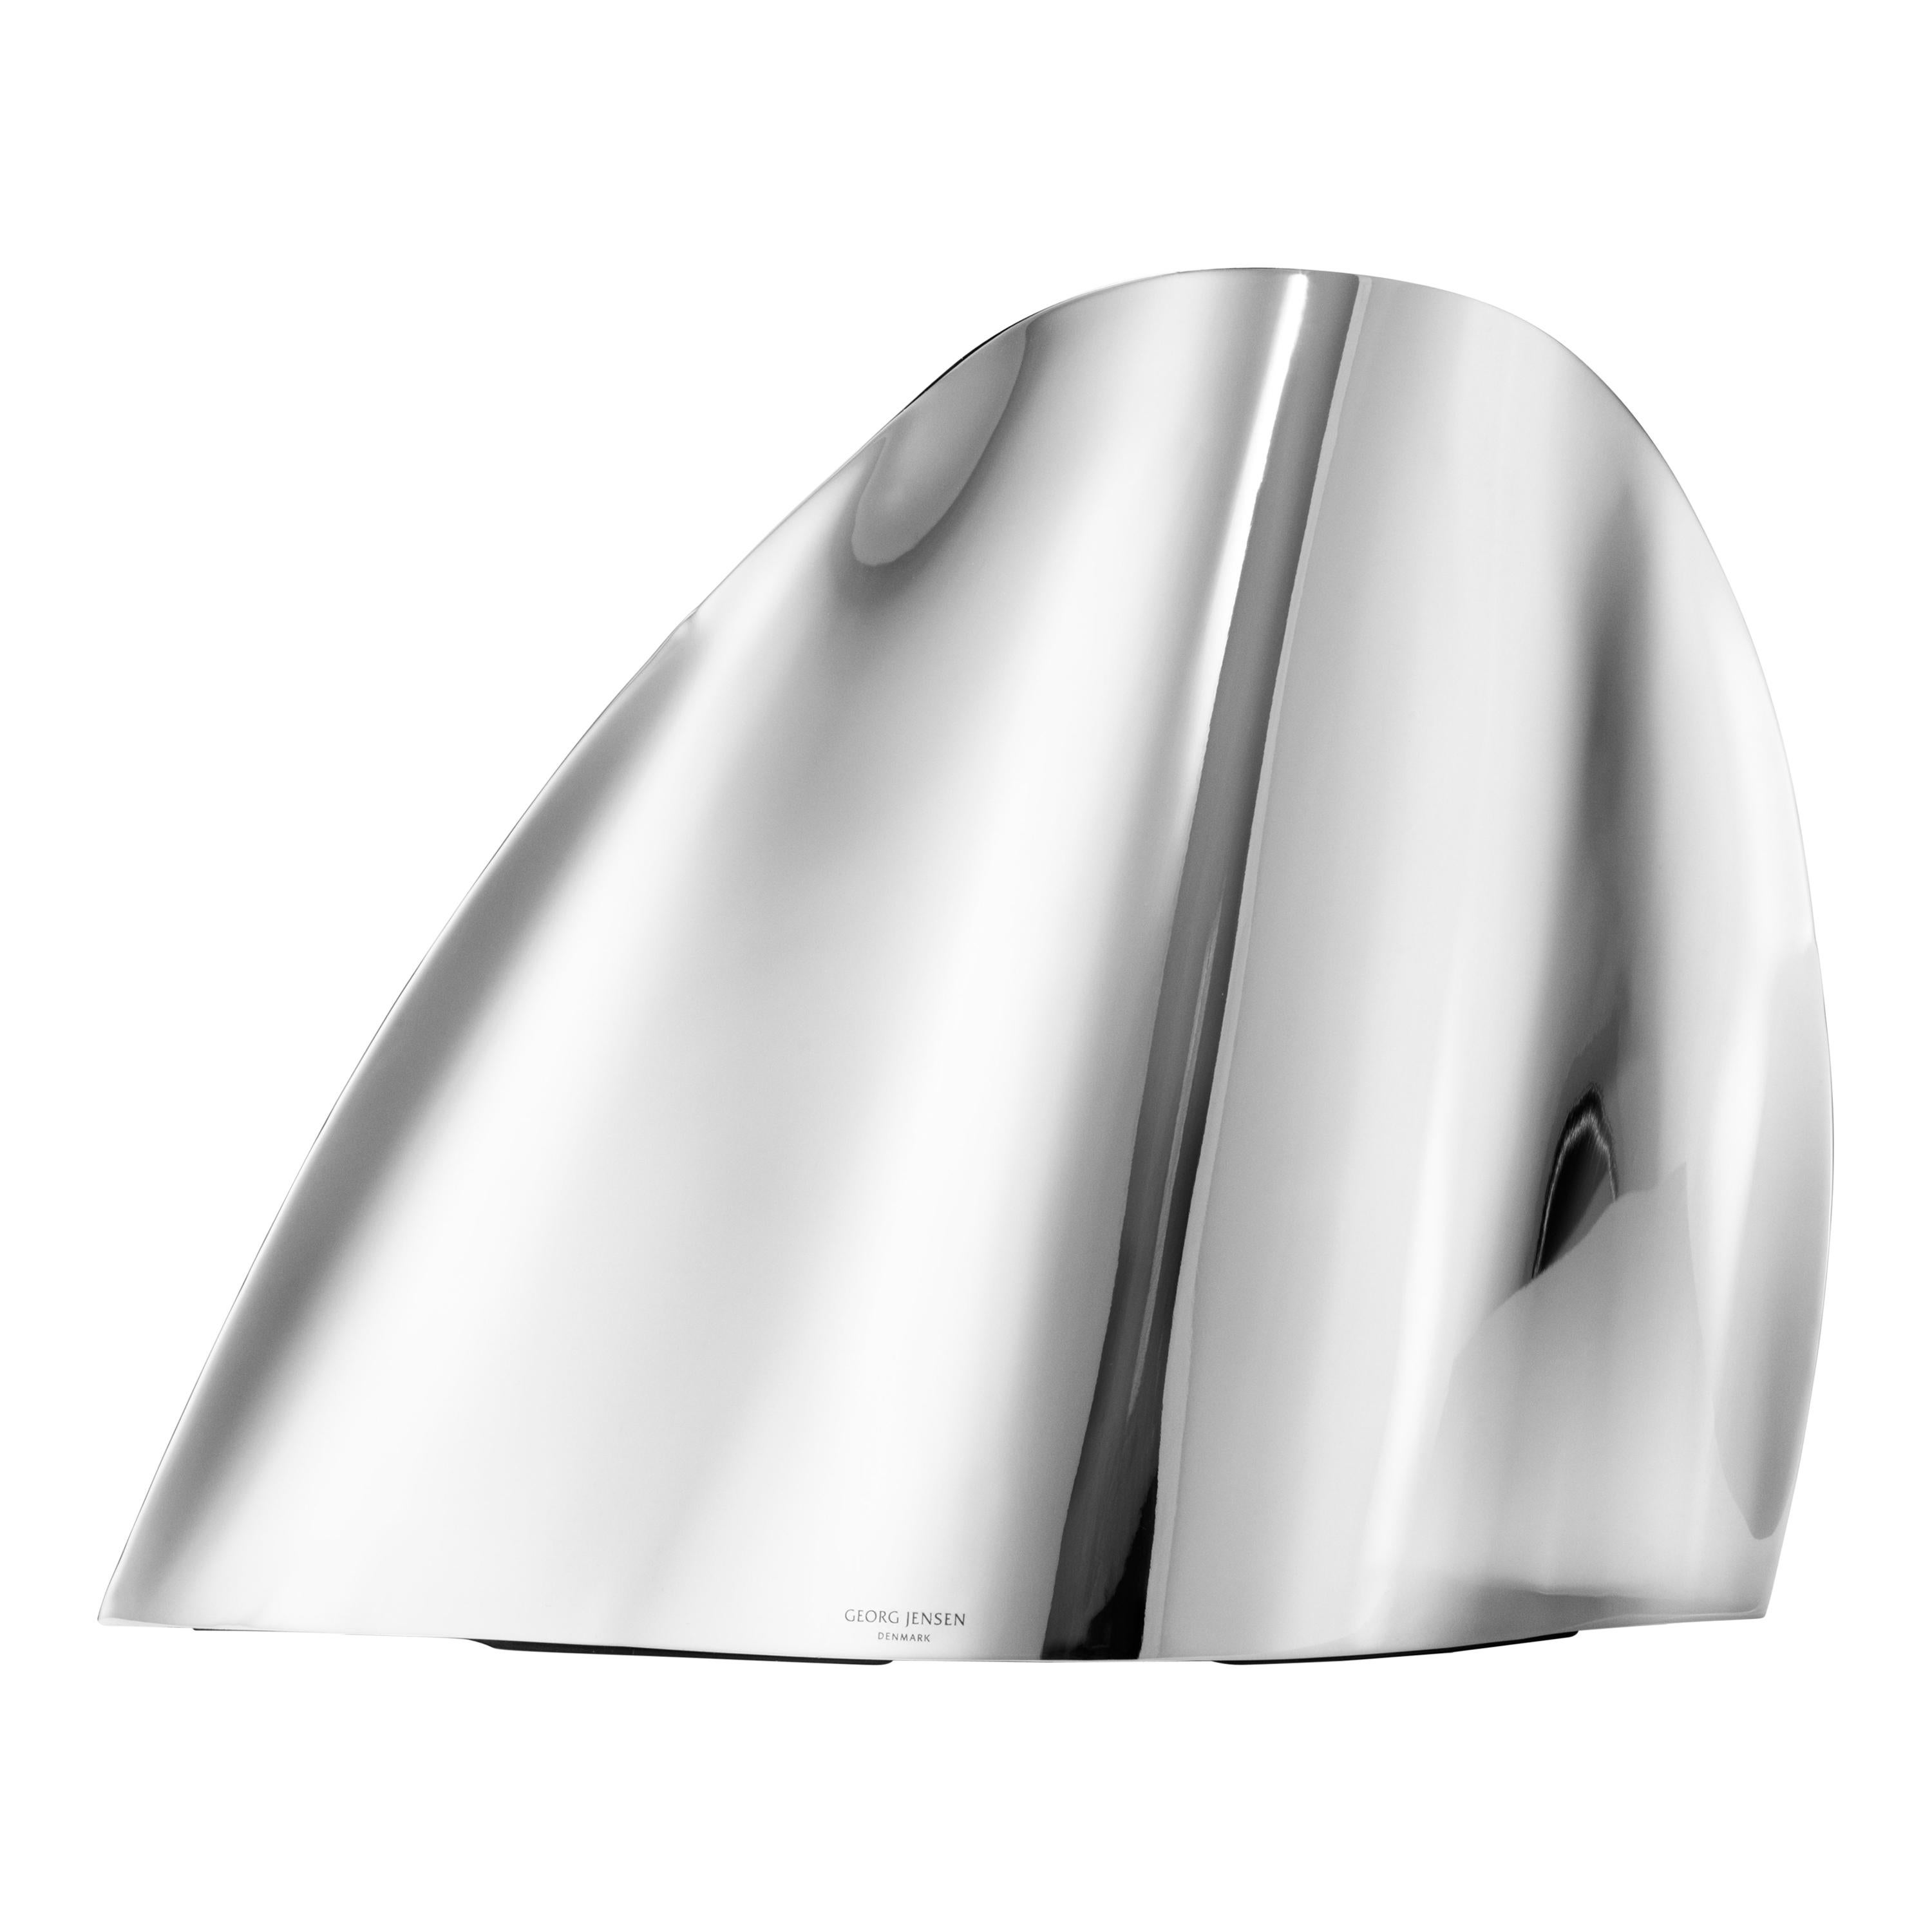 Georg Jensen Indulgence Champagne Cooler in Stainless Steel by Helle Damkjær